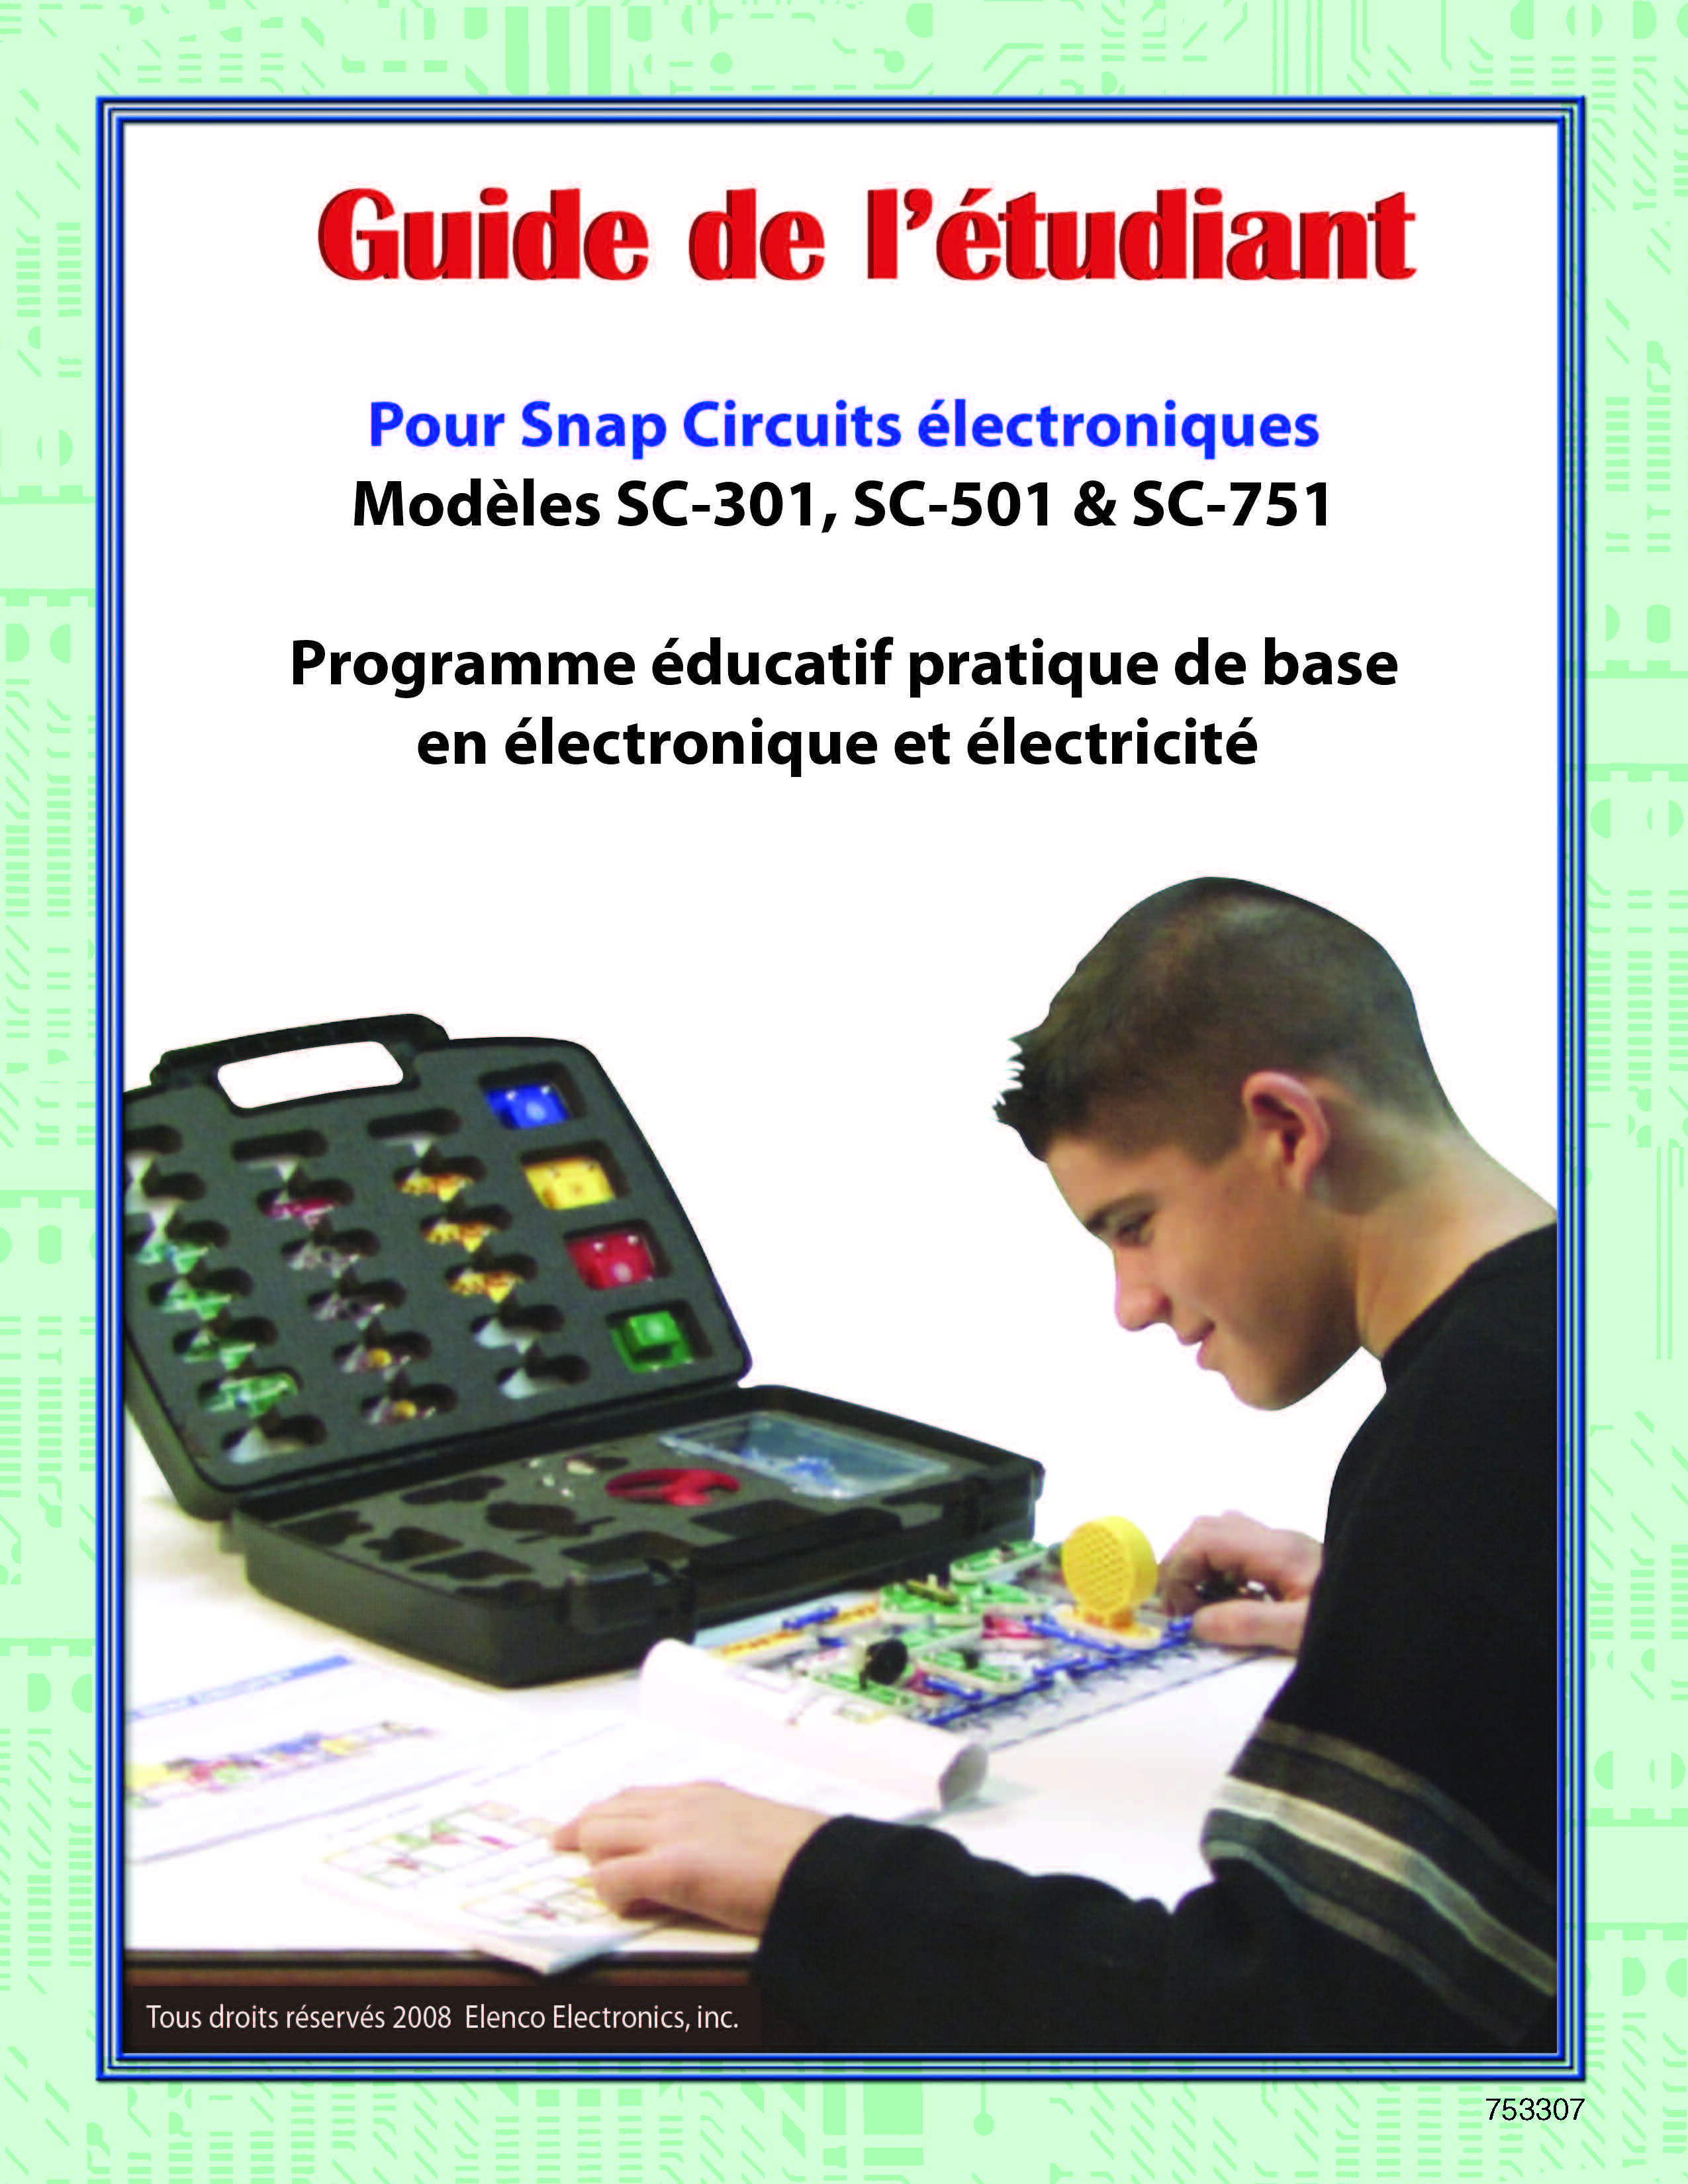 Snap Circuits Electricity Kits Buy Online Pro 500in1 Sc500 S With Computer Inteface Pedagogical Guides